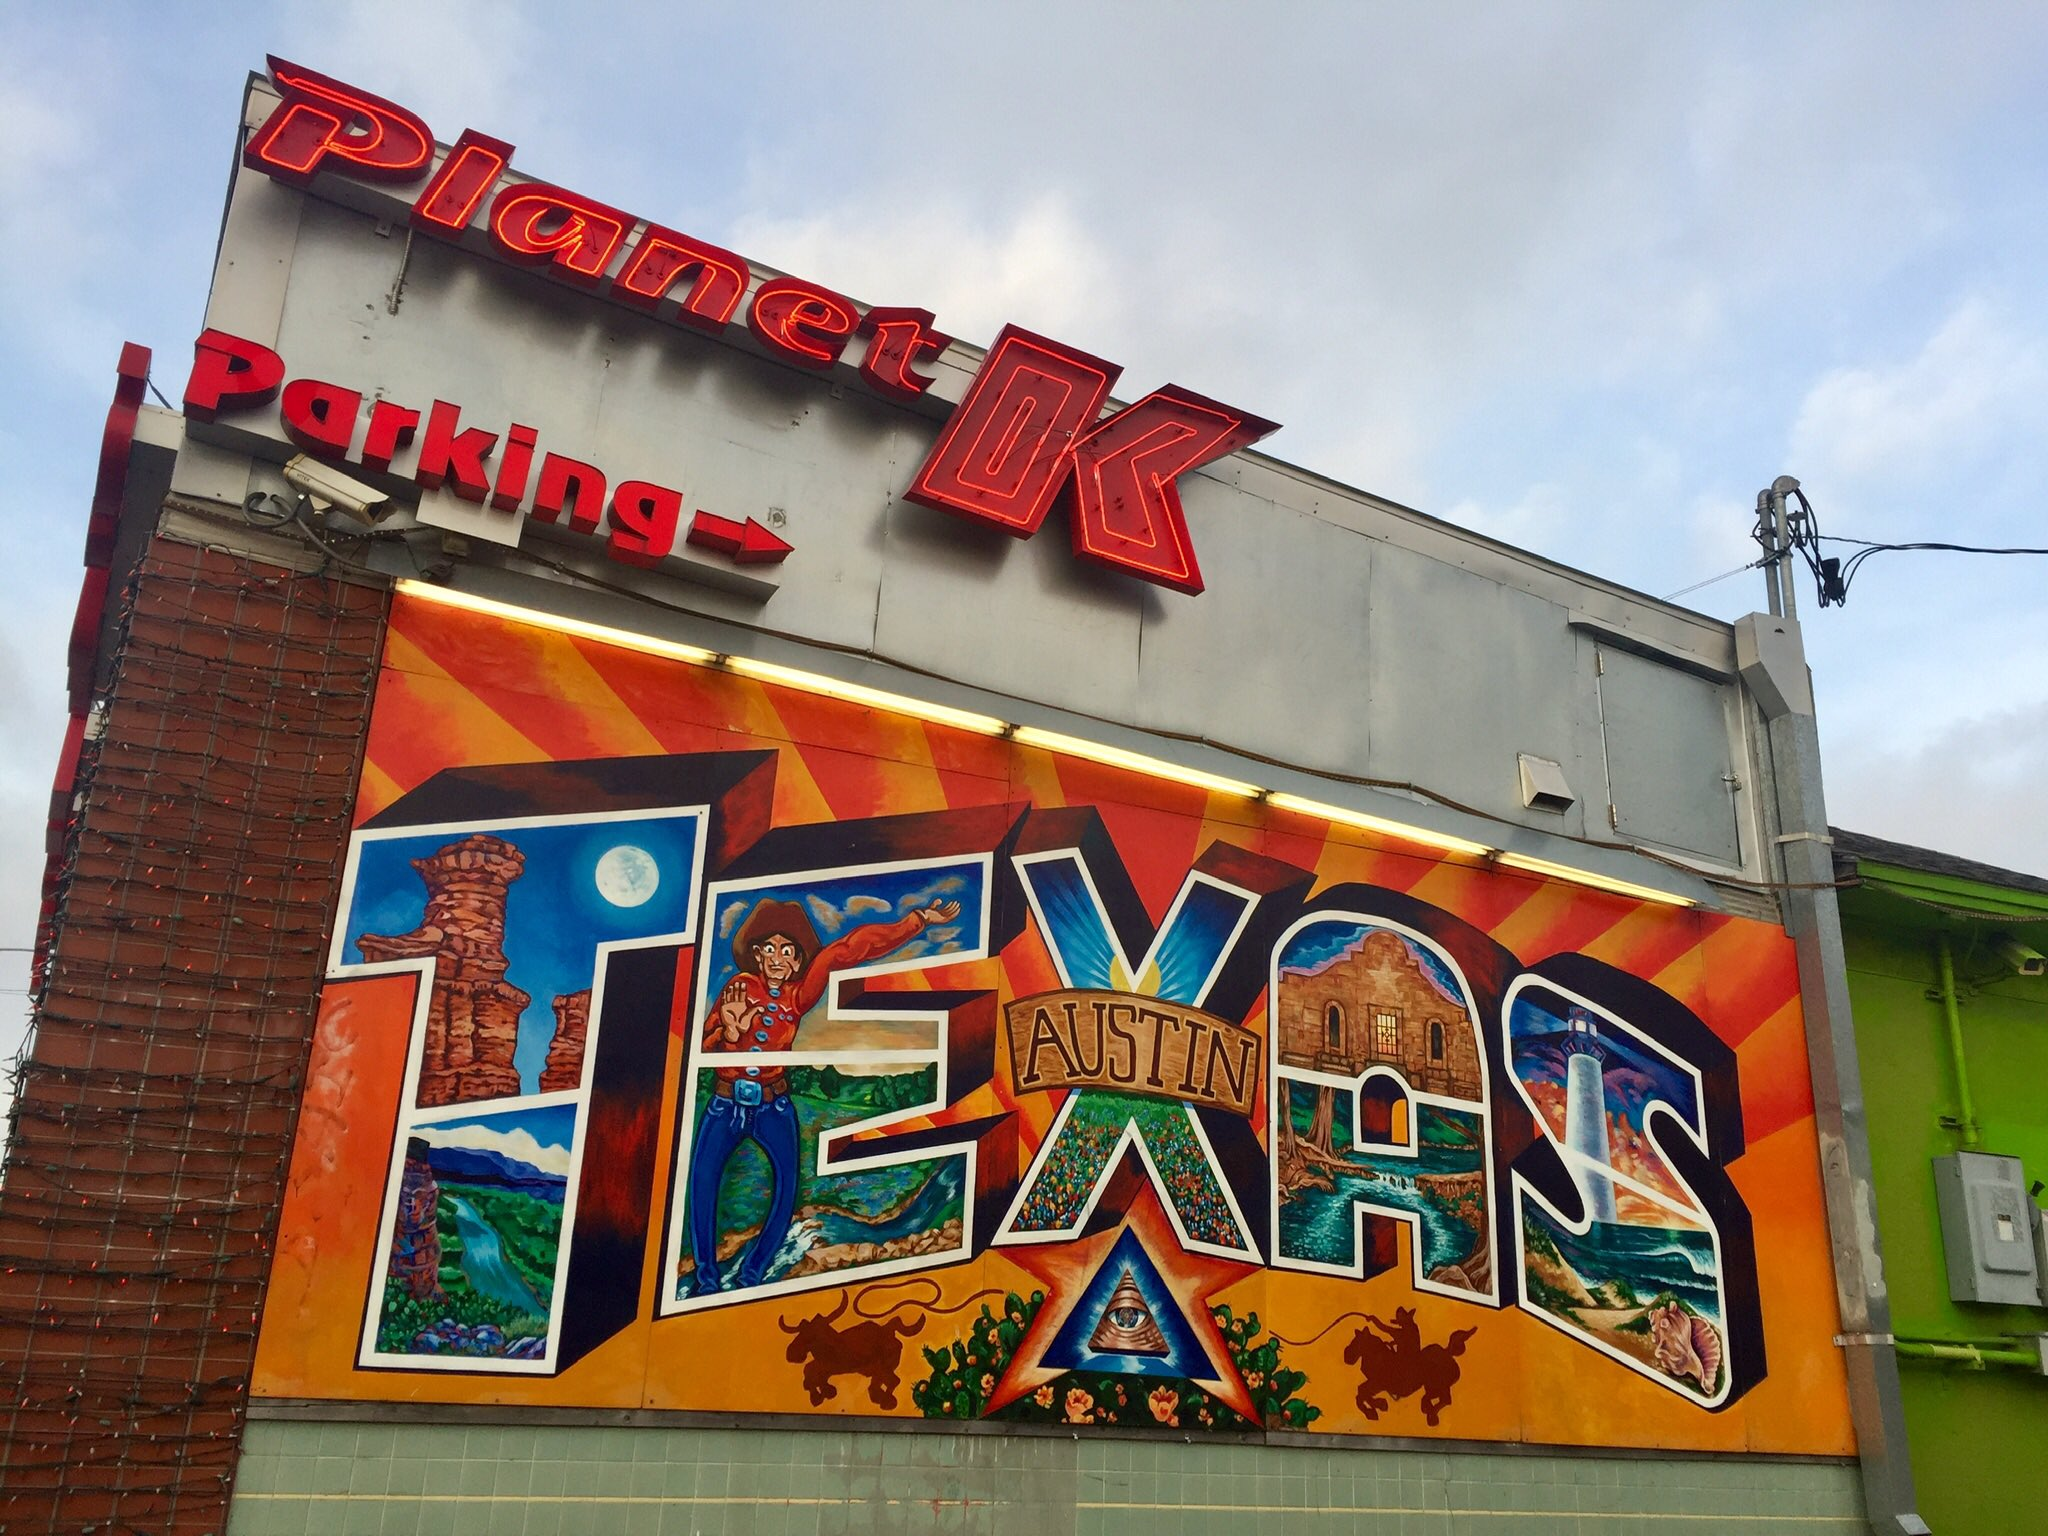 Caption: A mural near the University of Texas at Austin., Credit: Austin Fast